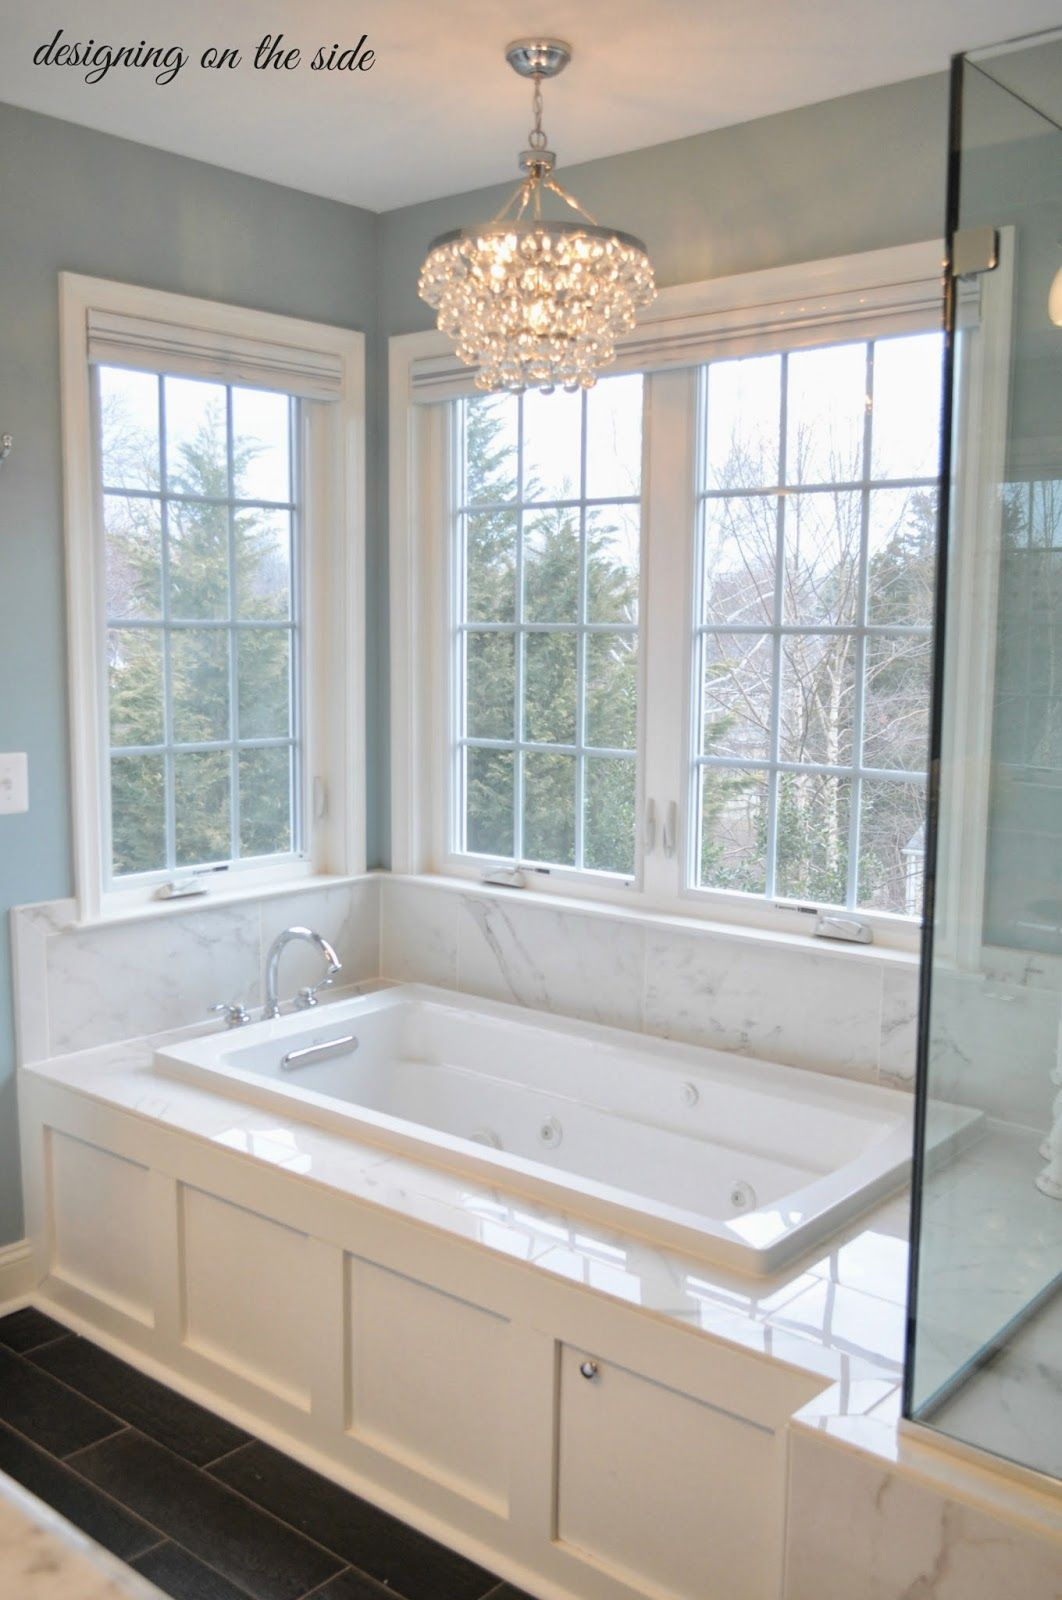 Master Bath Reveal Designing On The Side Bathroom Remodel Master Master Bath Remodel Bathrooms Remodel